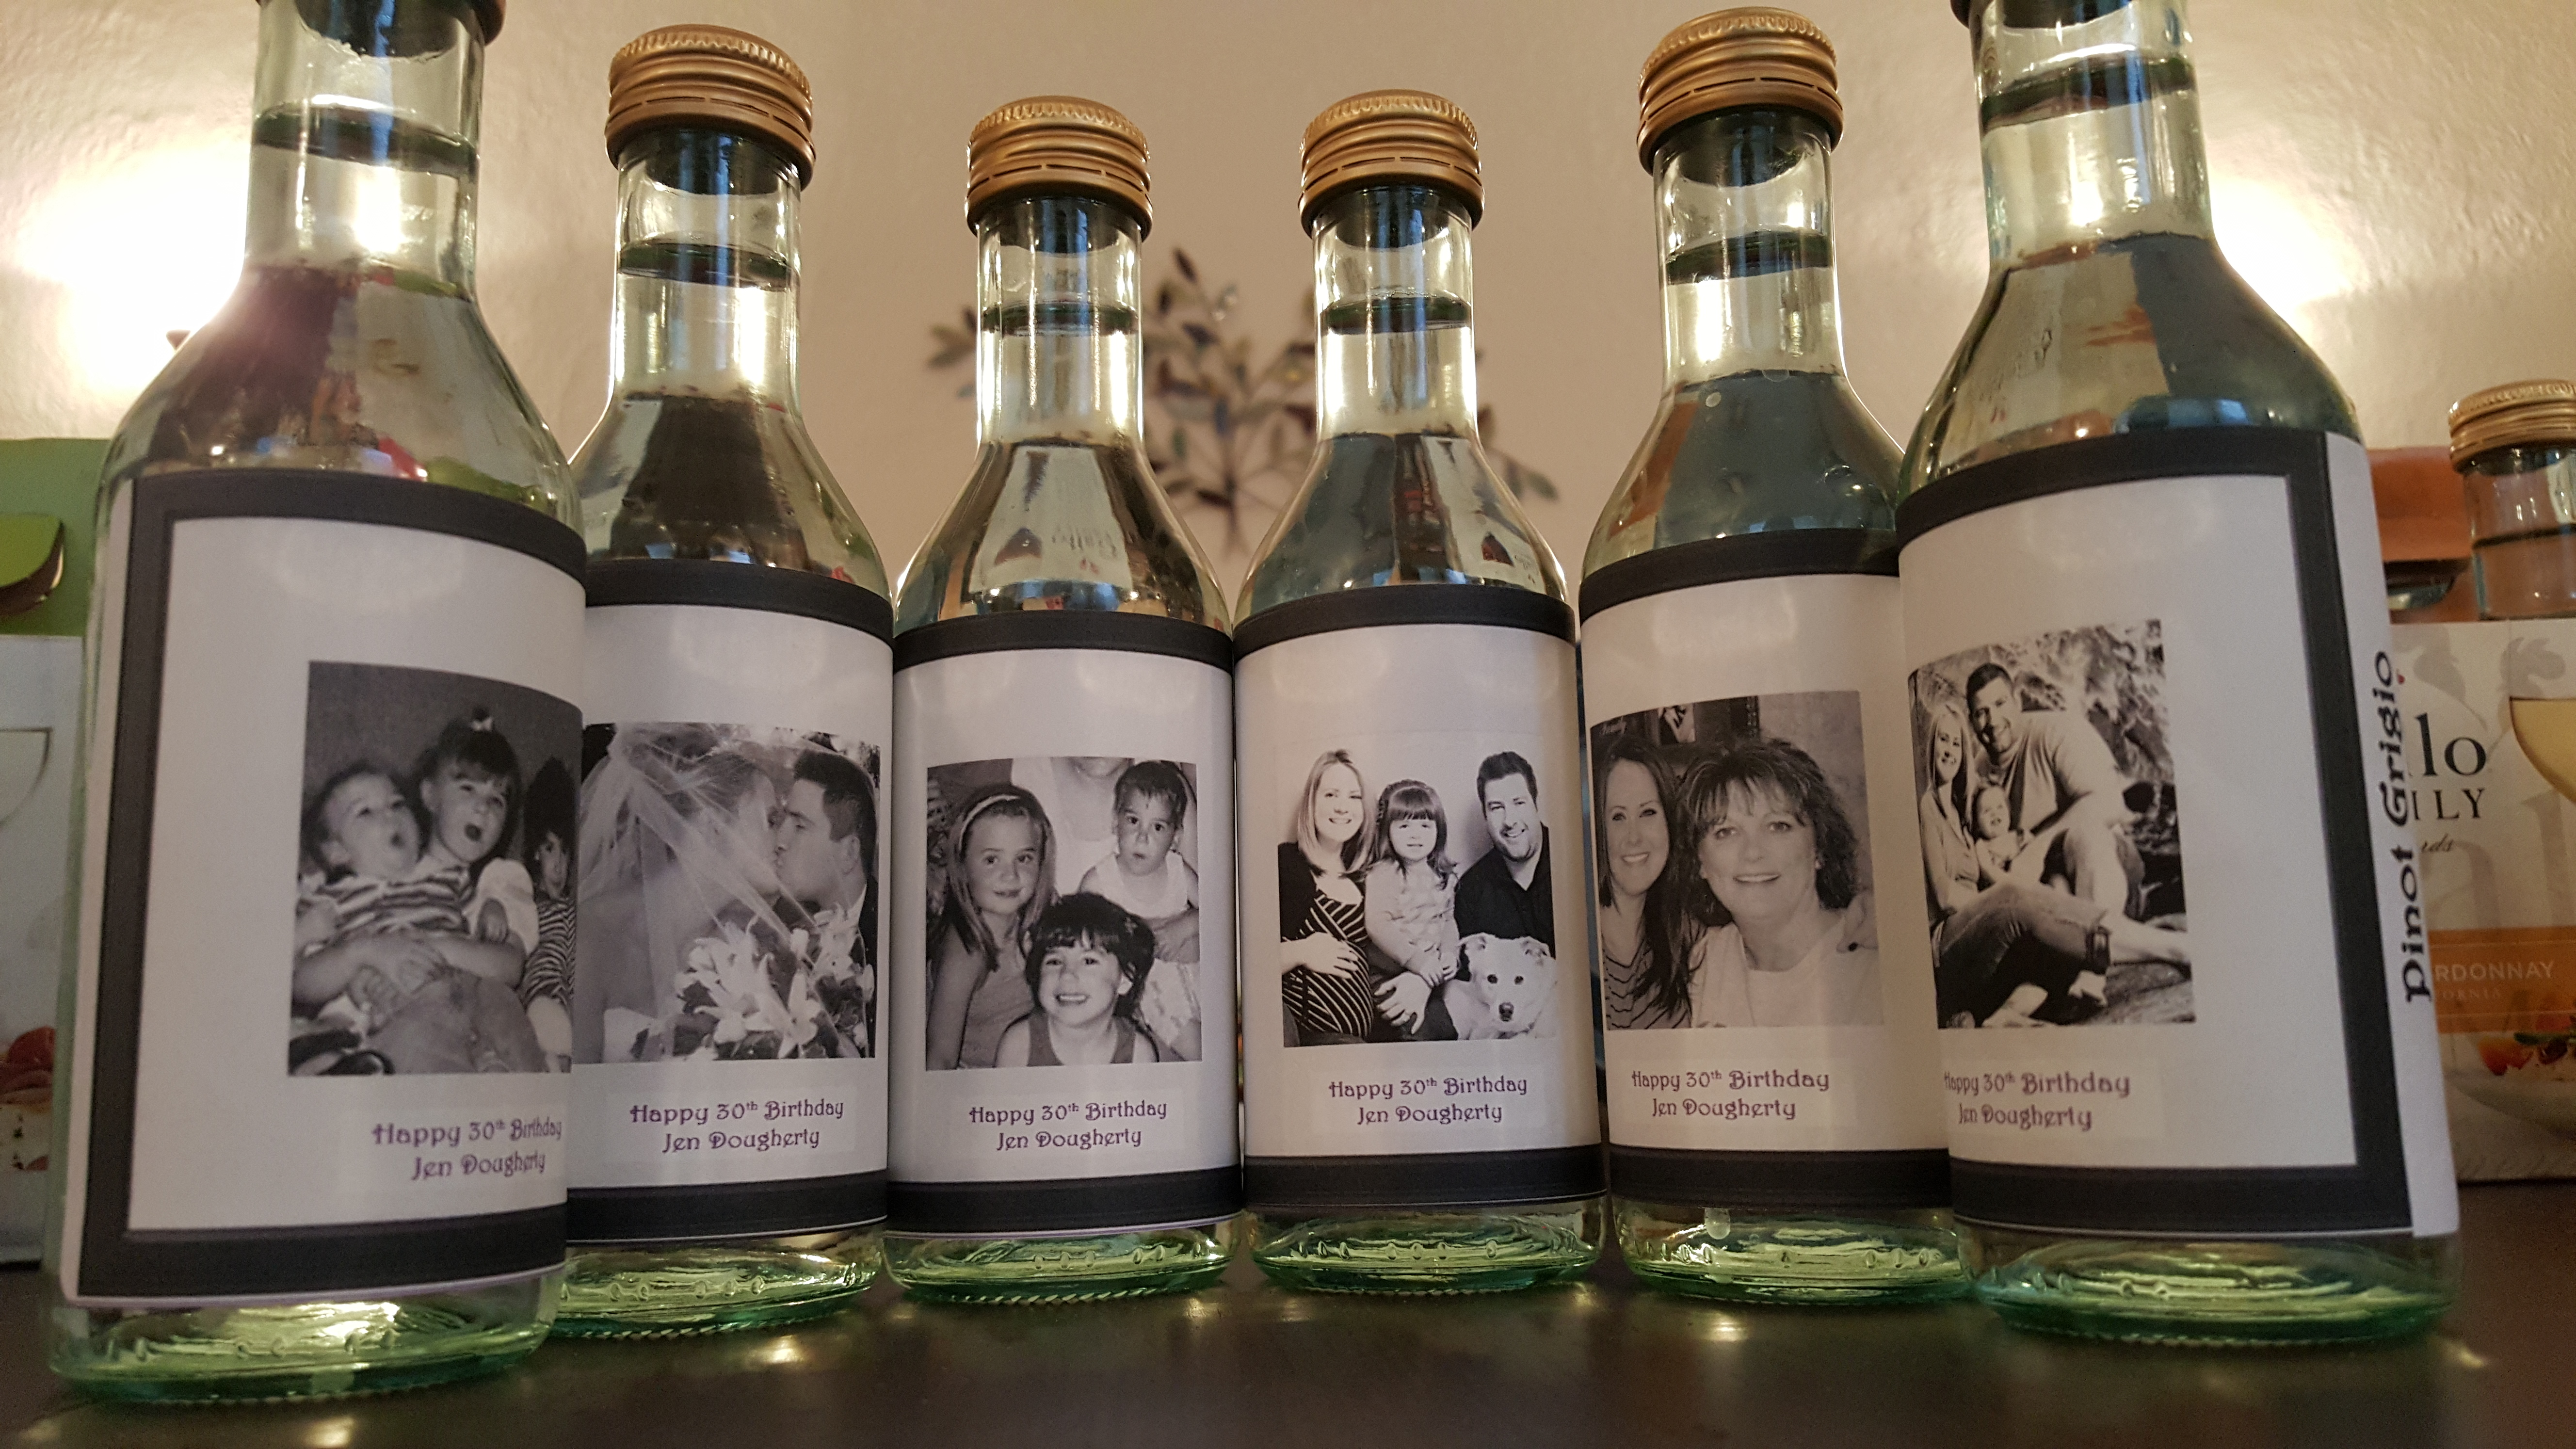 personalized wine bottle labels for birthday ; de